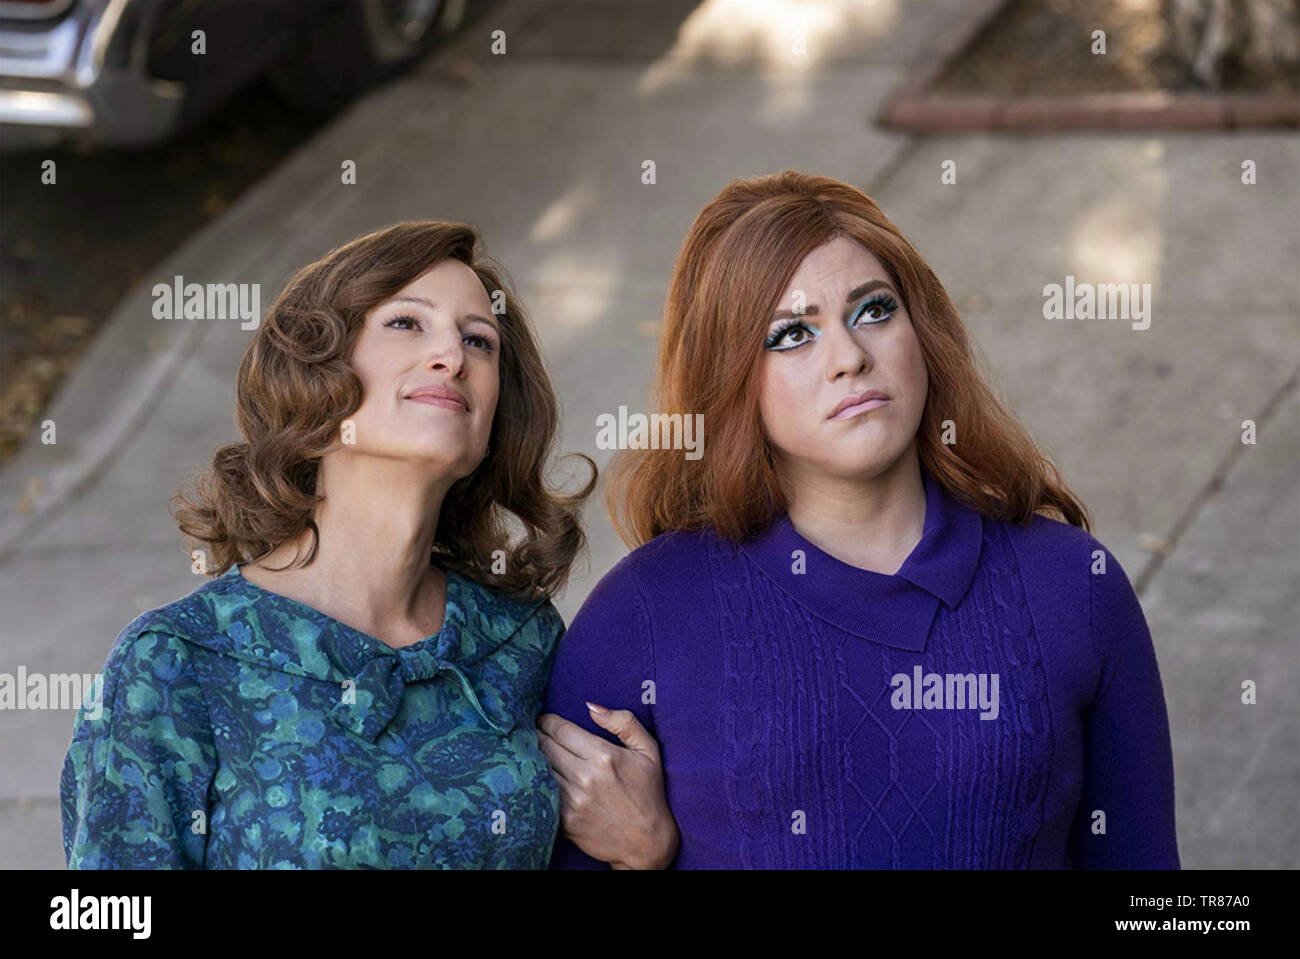 TALES OF THE CITY 2019 NetflixTV series with Daniela Vega at left and  Jen Richards - Stock Image